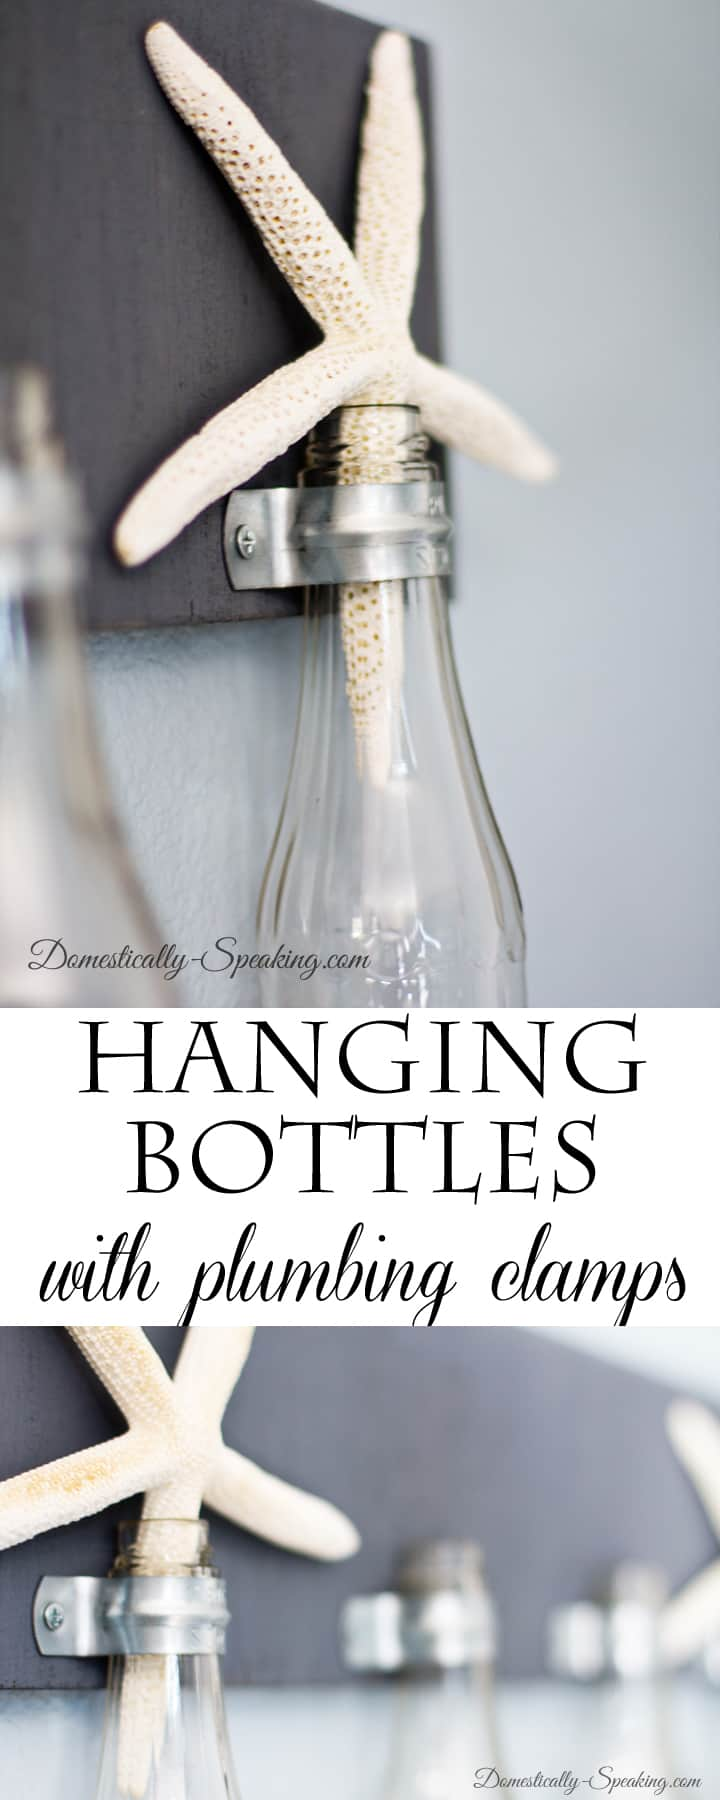 DIY Hanging Bottles with Plumbing Clamps  Learn how to make your own